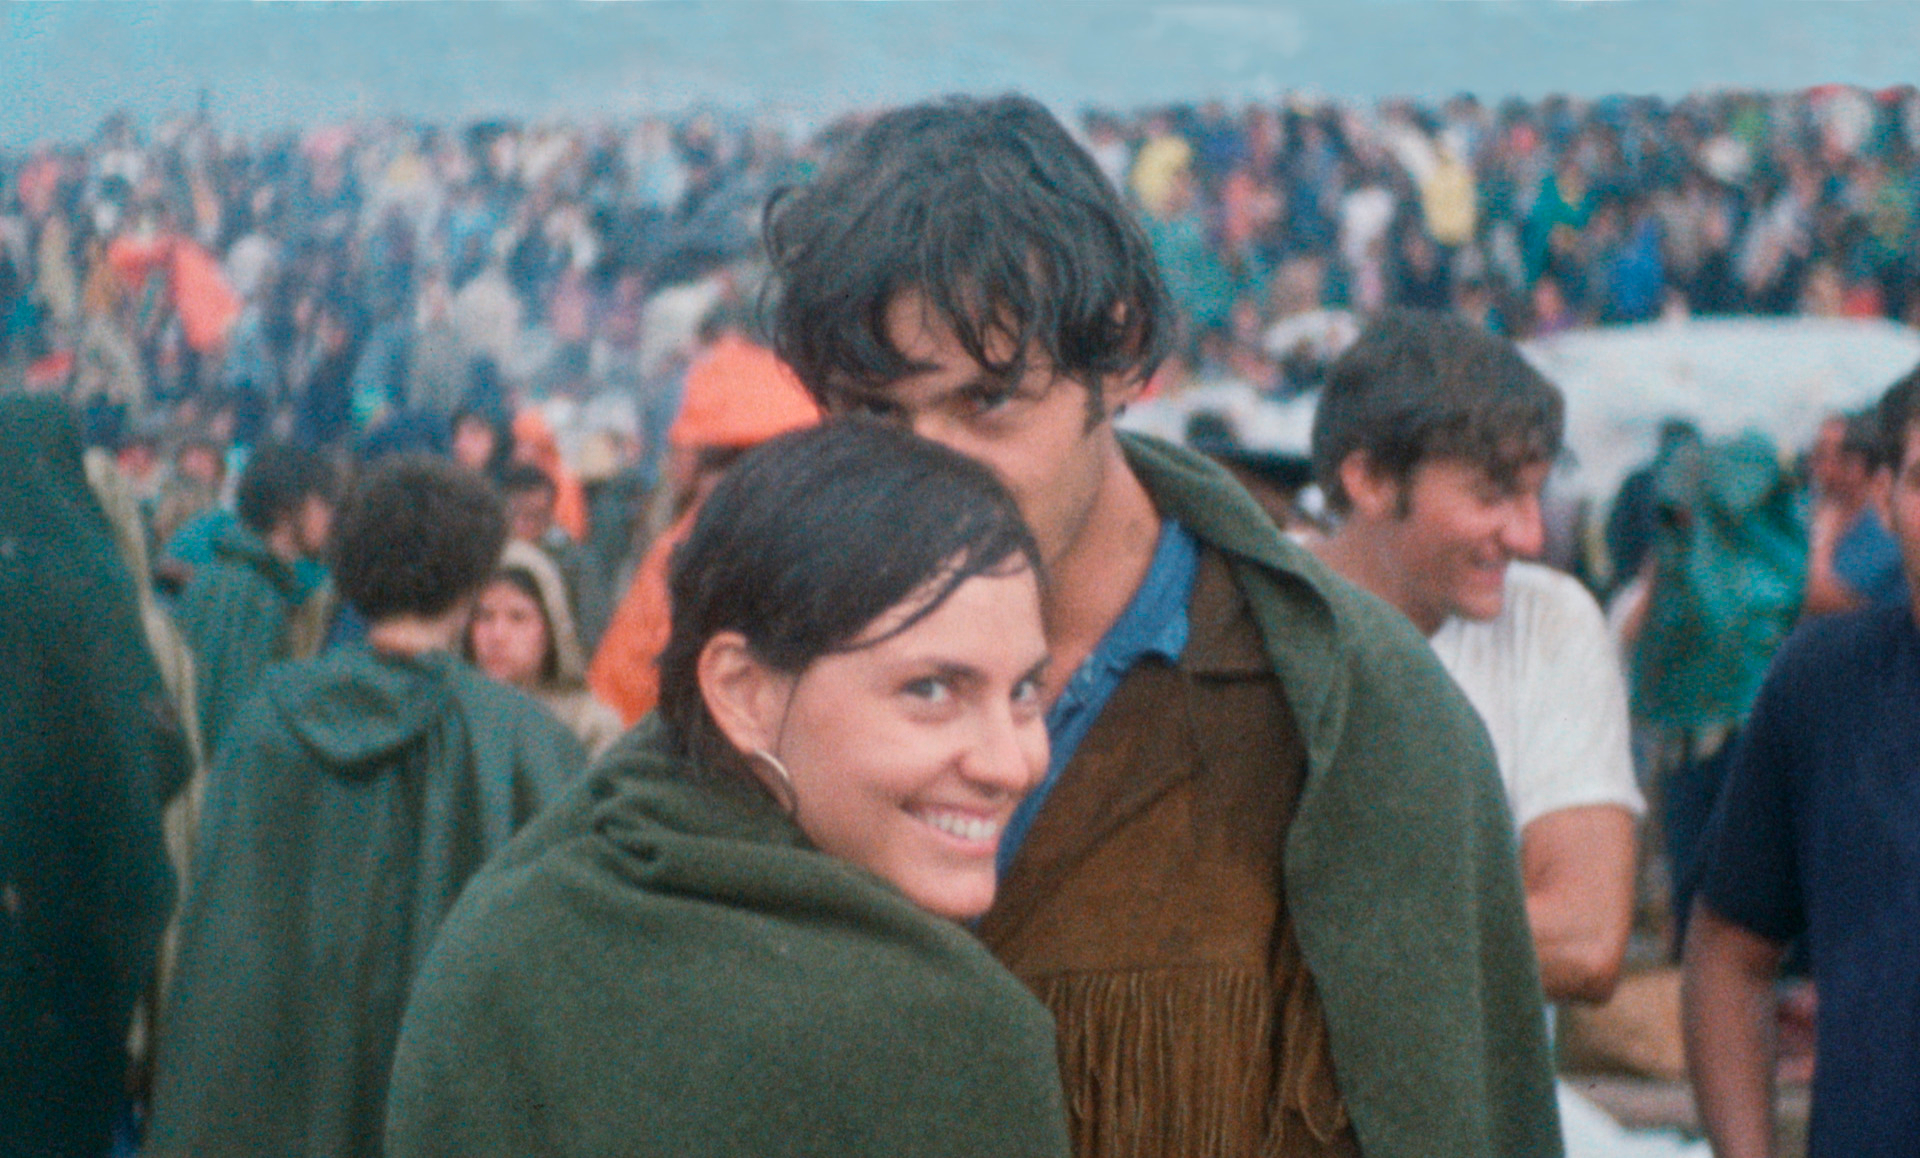 50 Years After They Met at Woodstock, This Couple Finally Found a Photo of Their First Hours Together